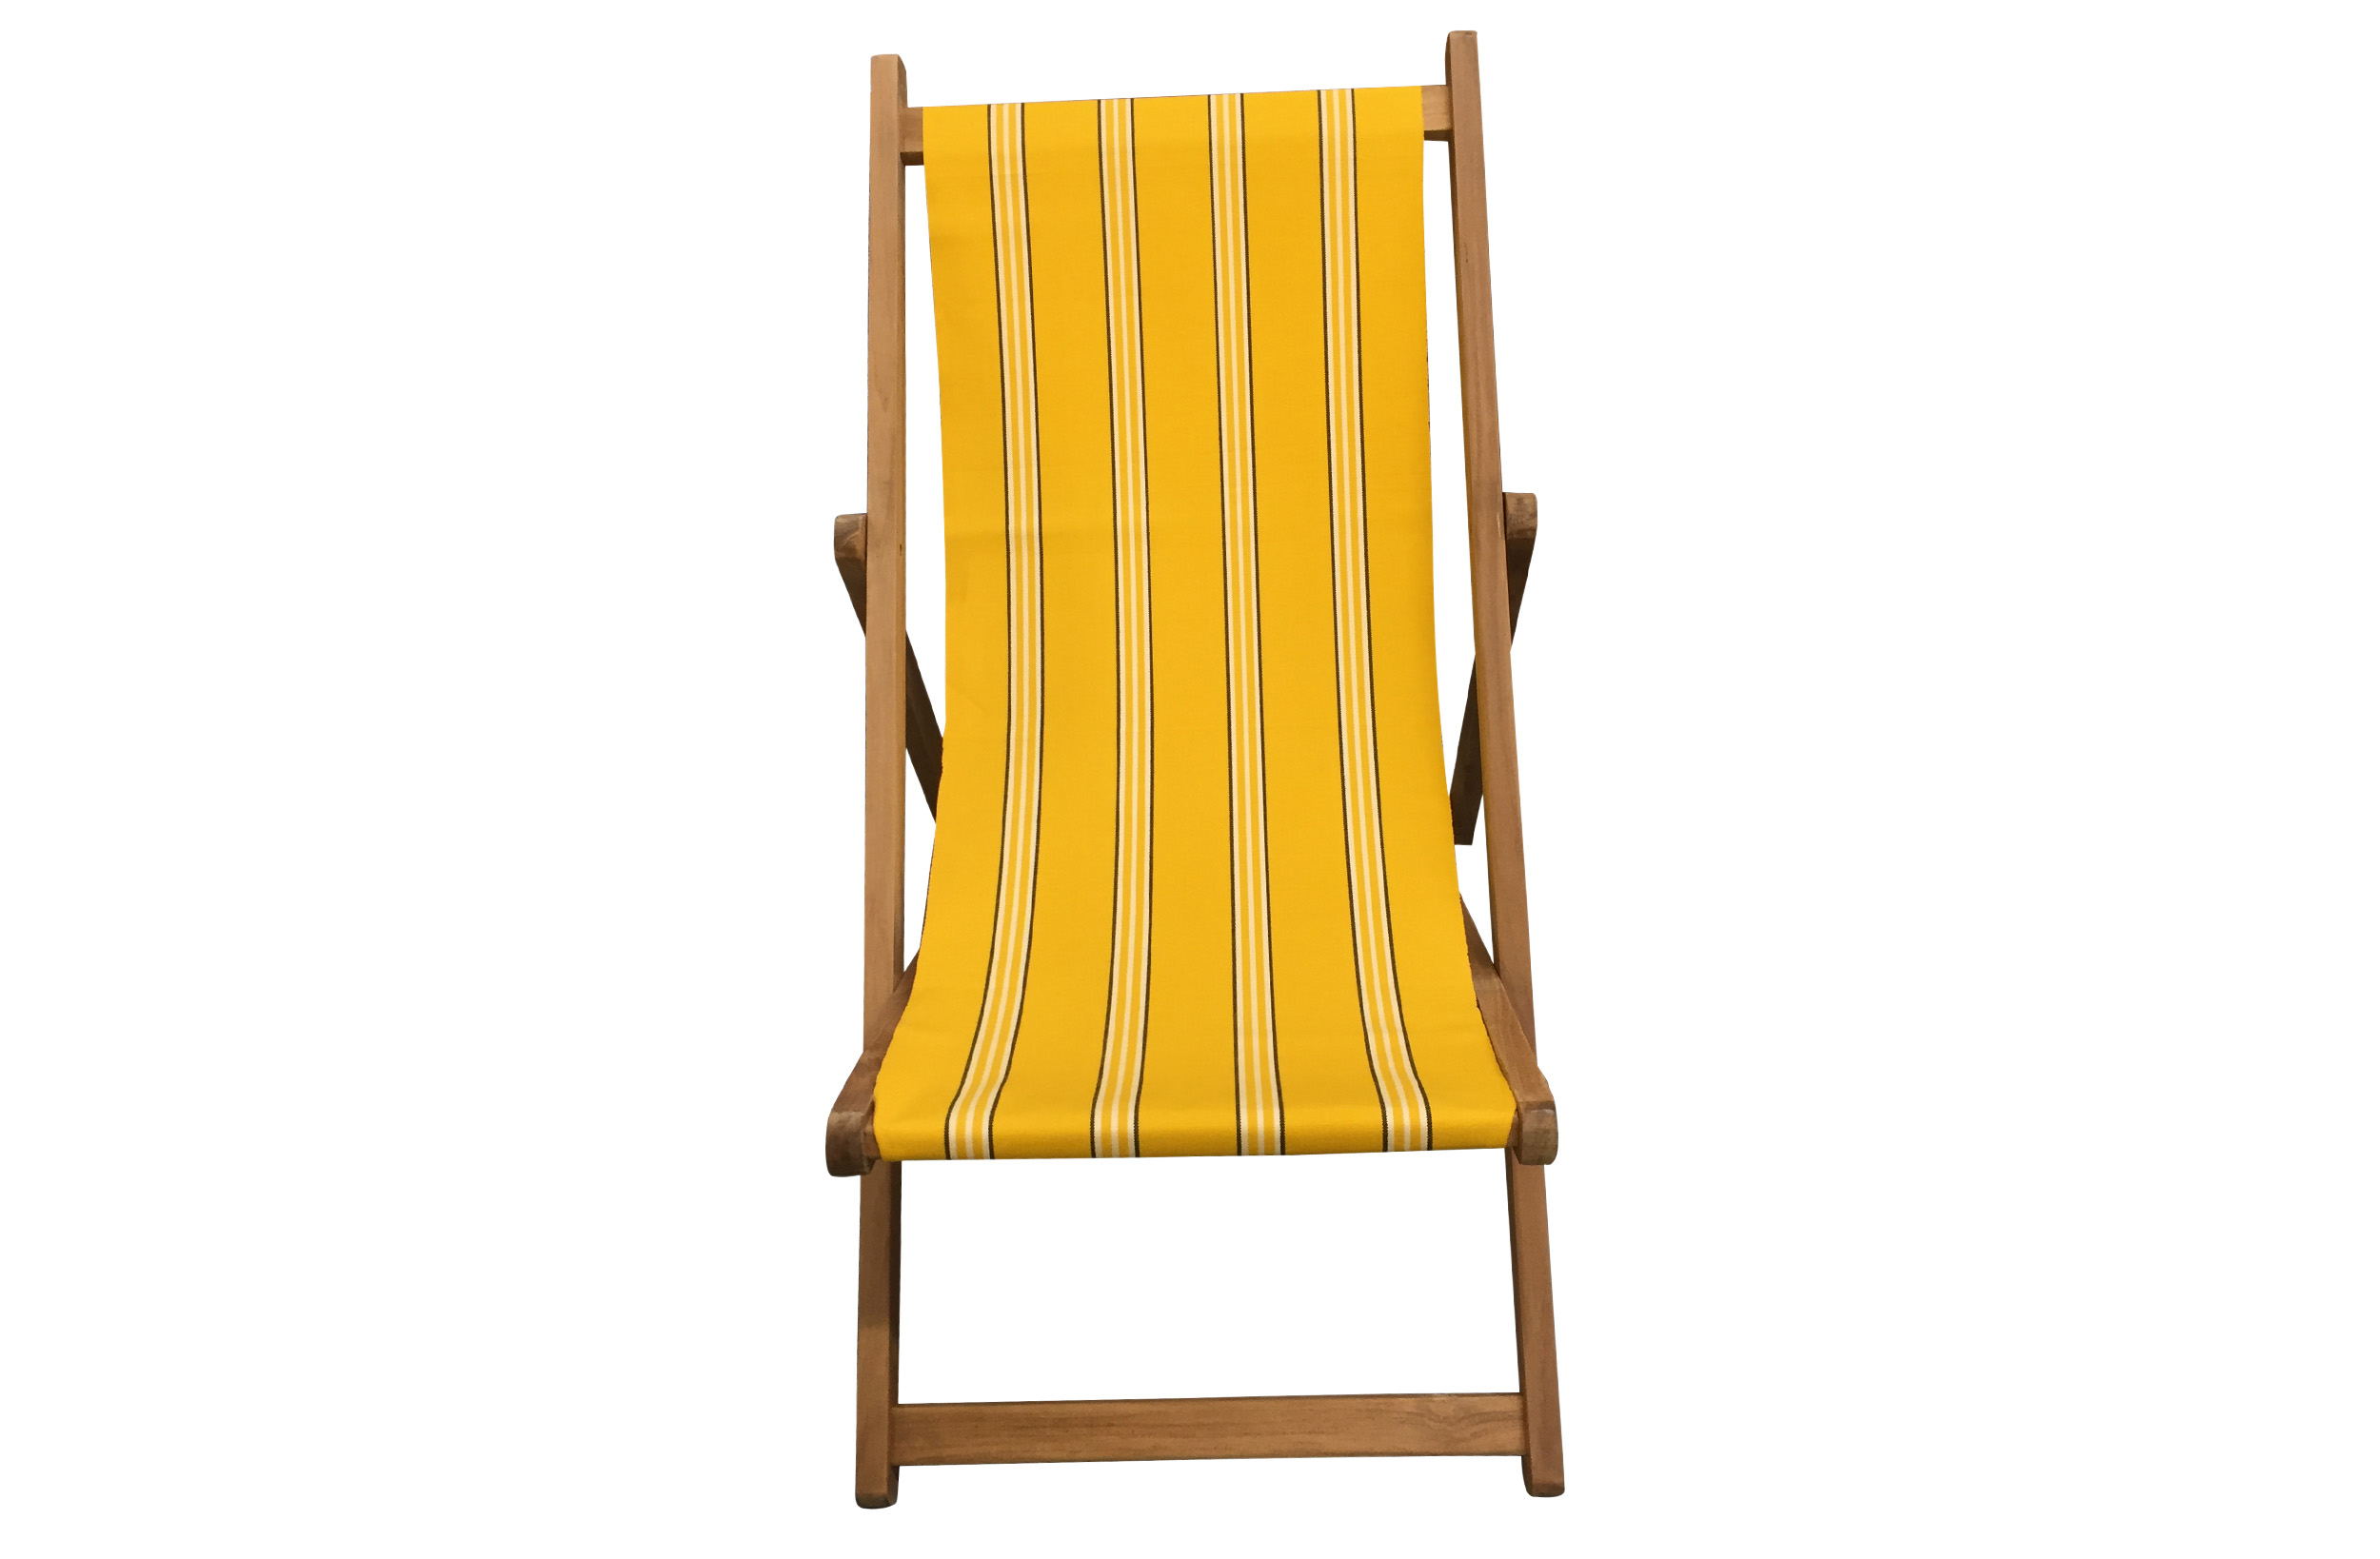 yellow, white, black- Deckchairs | Buy Folding Wooden Deck Chairs